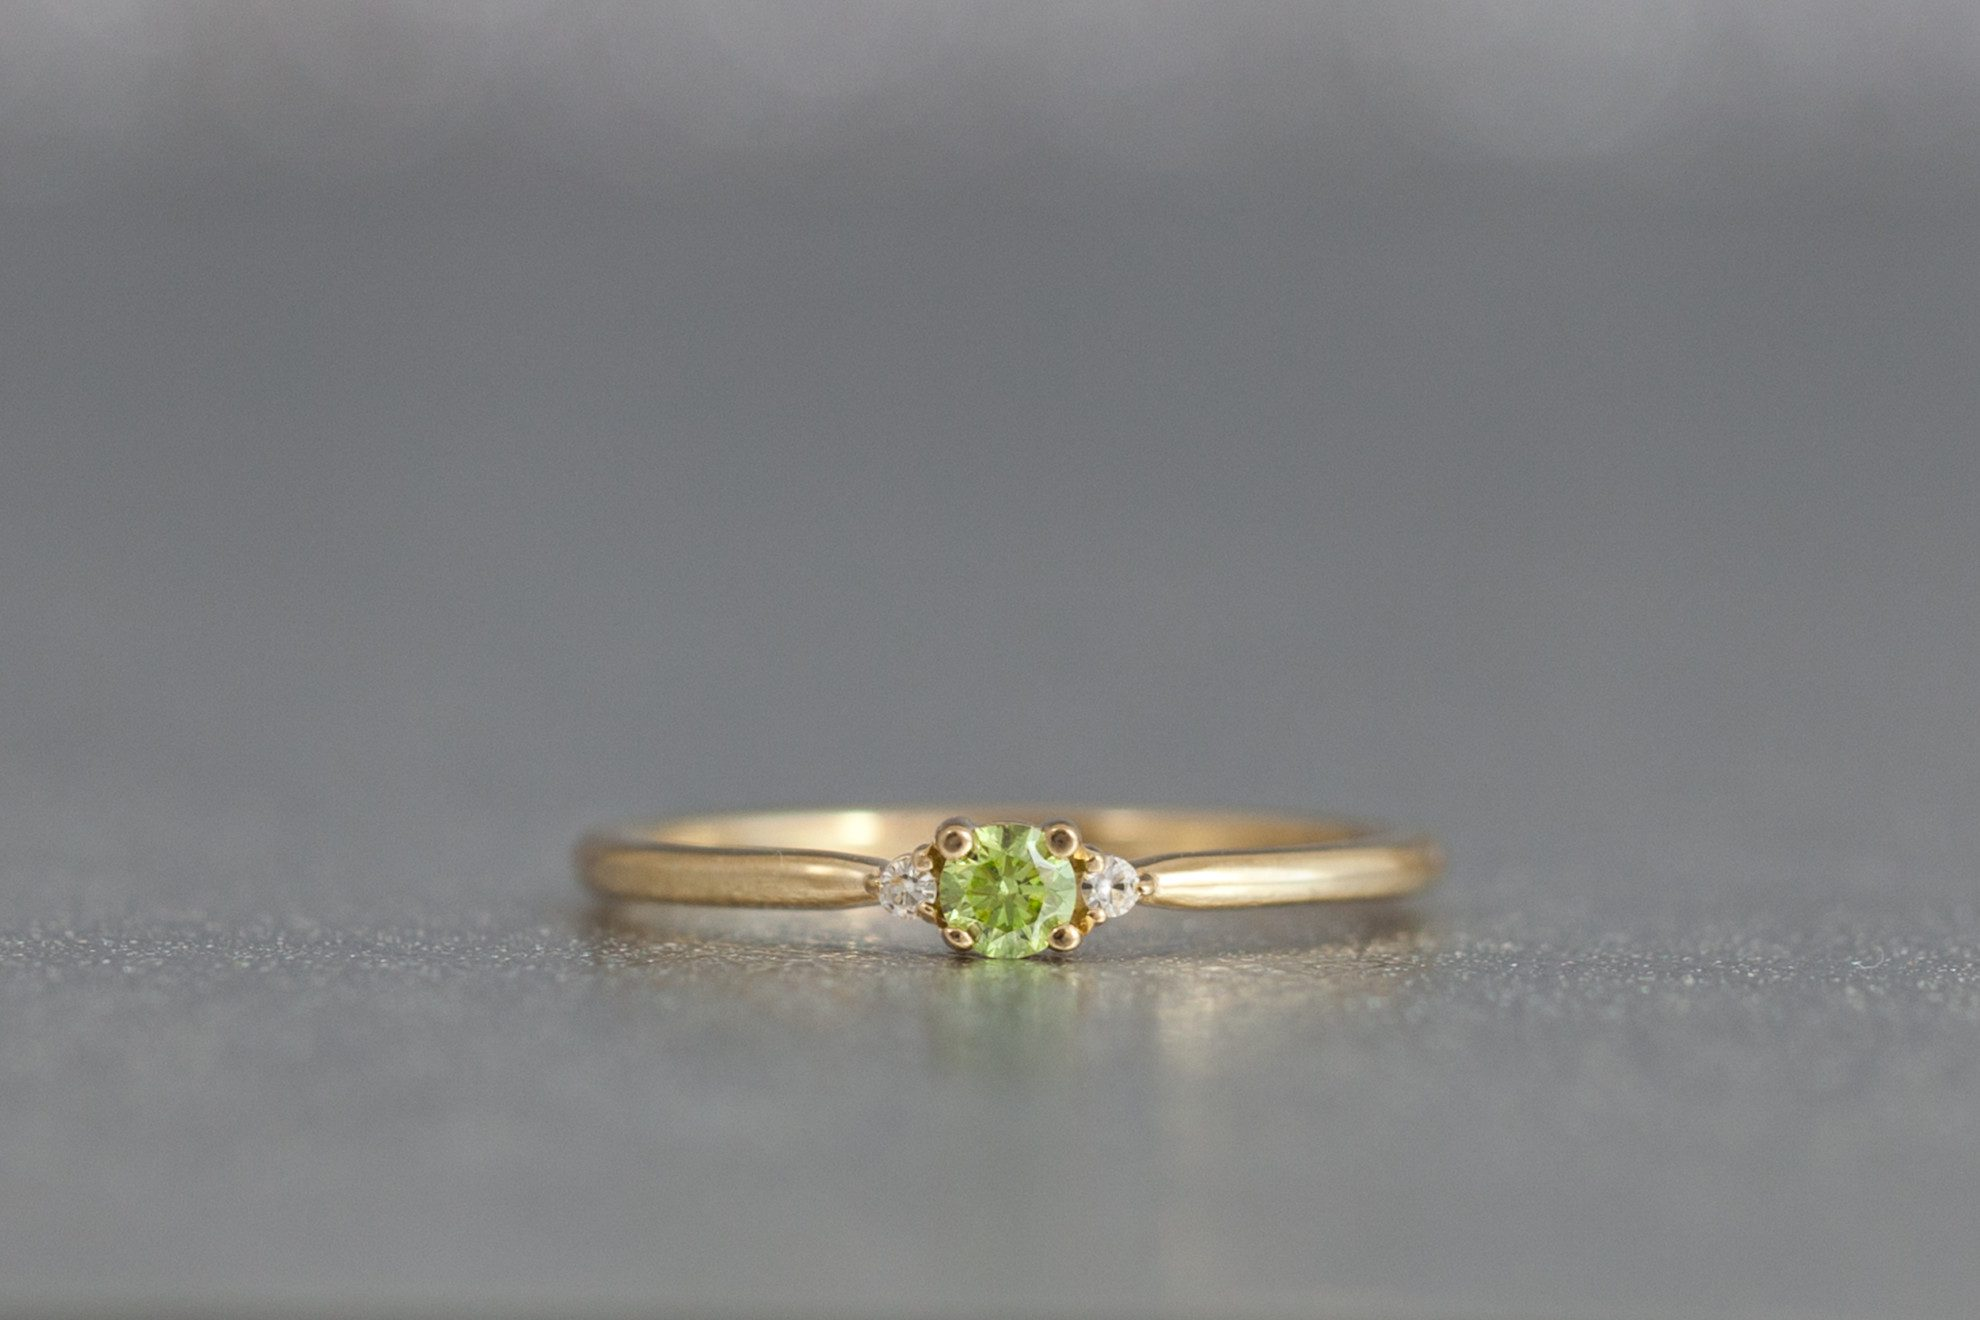 gold lagerfeld rings gemstone karl picture stone product e diamond side engagement of ring white wedding